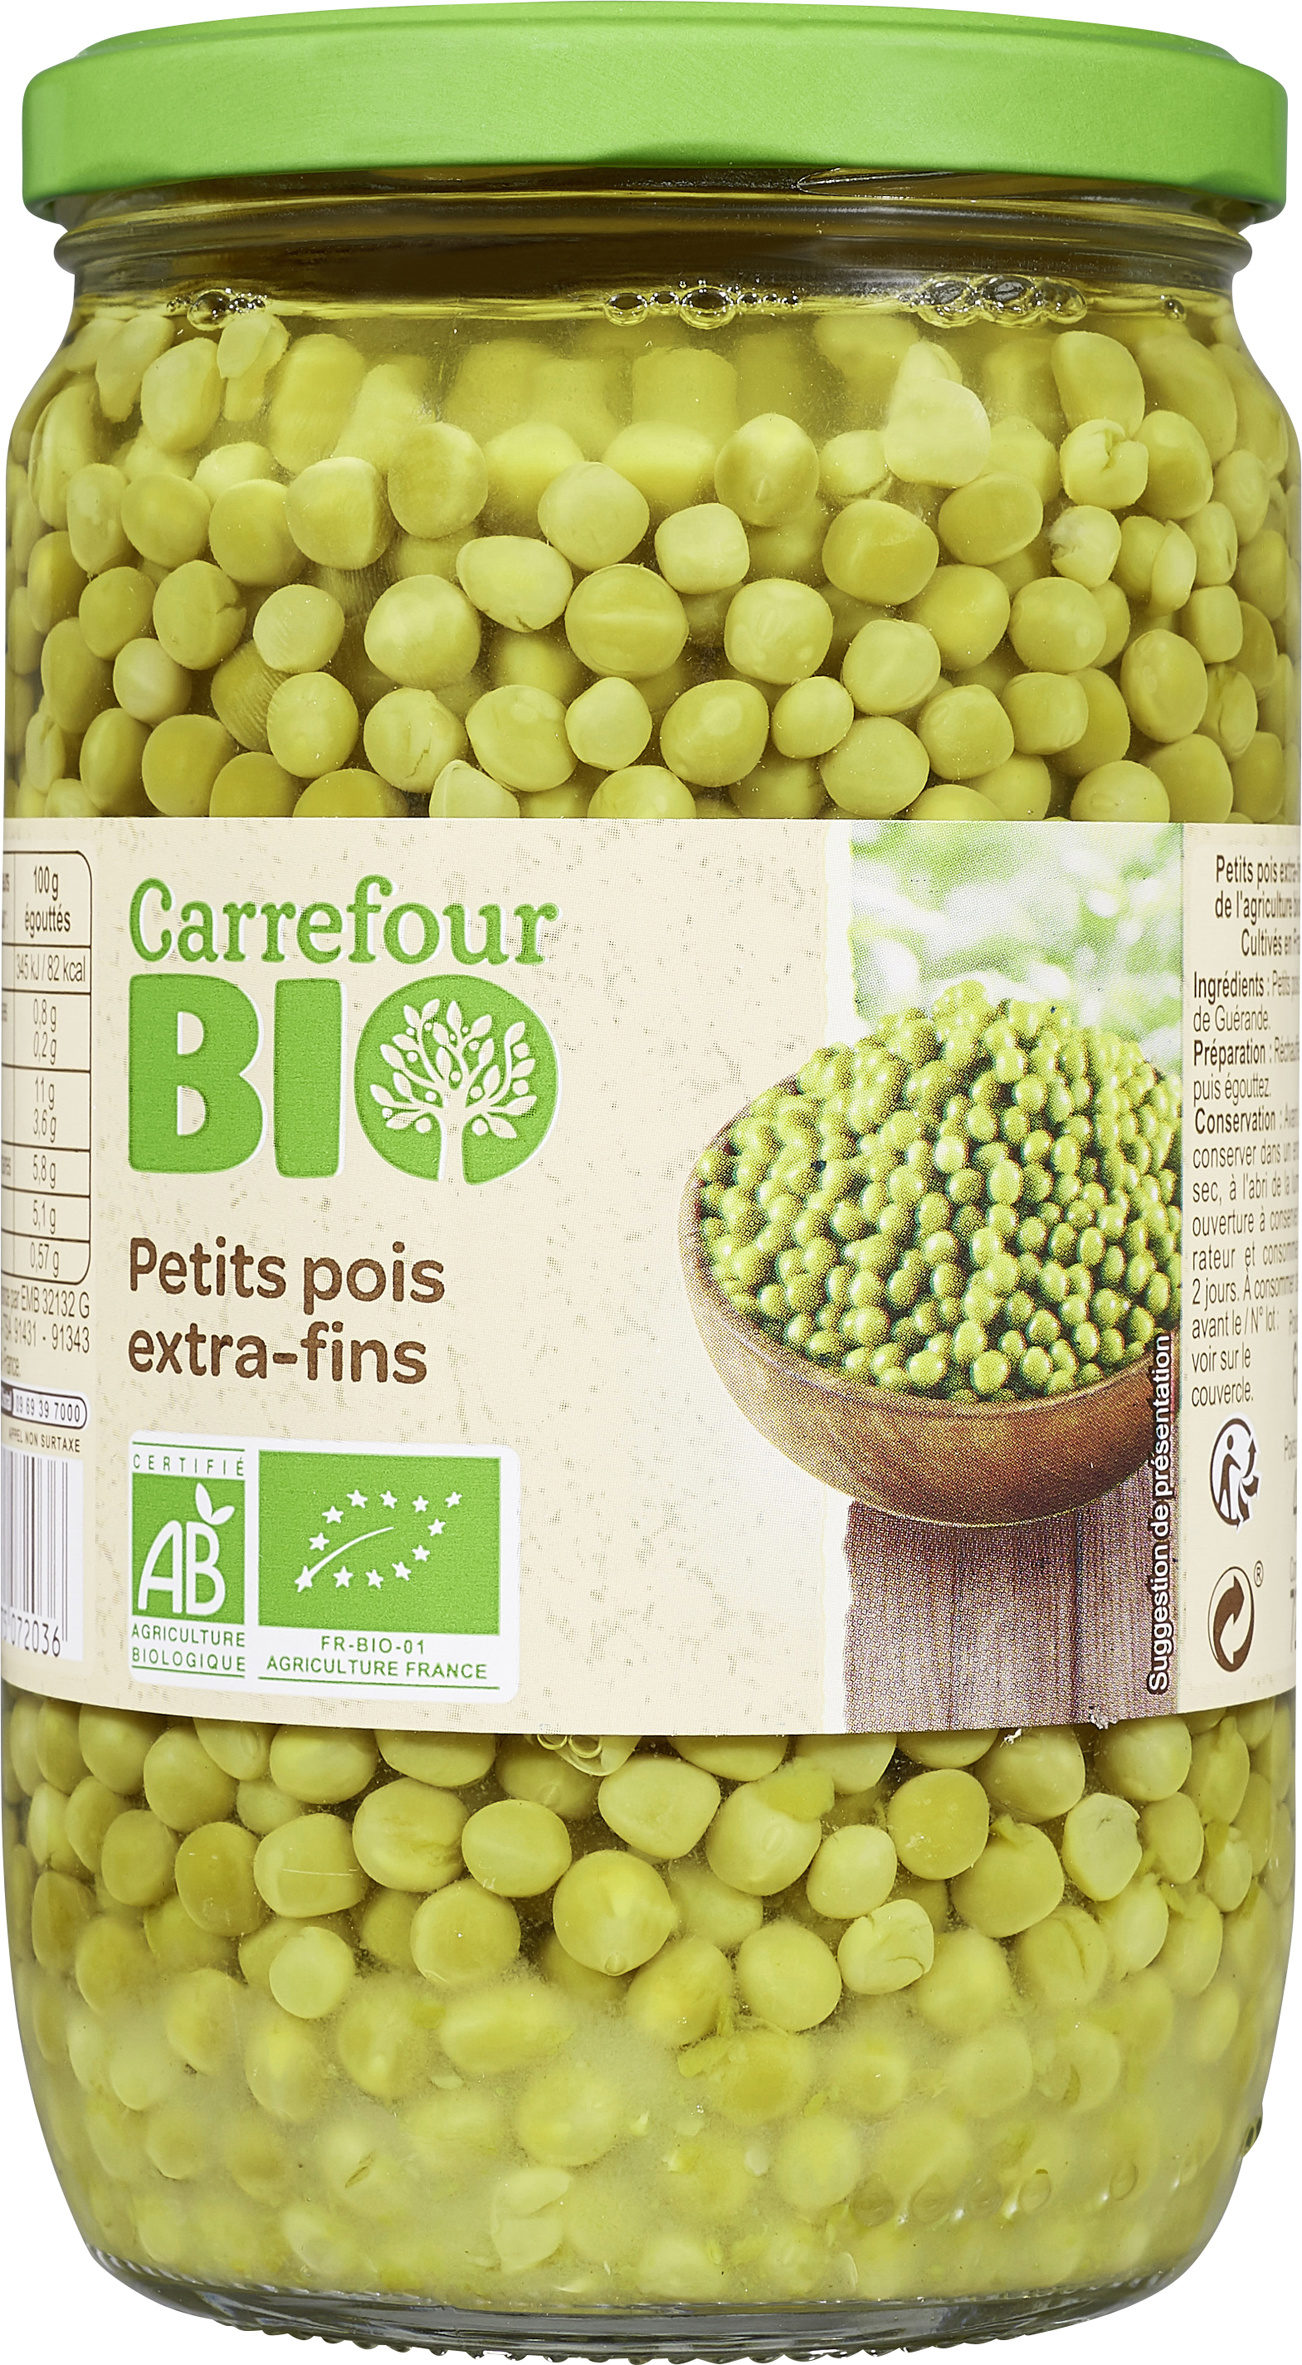 Petits pois extra-fins - Product - fr